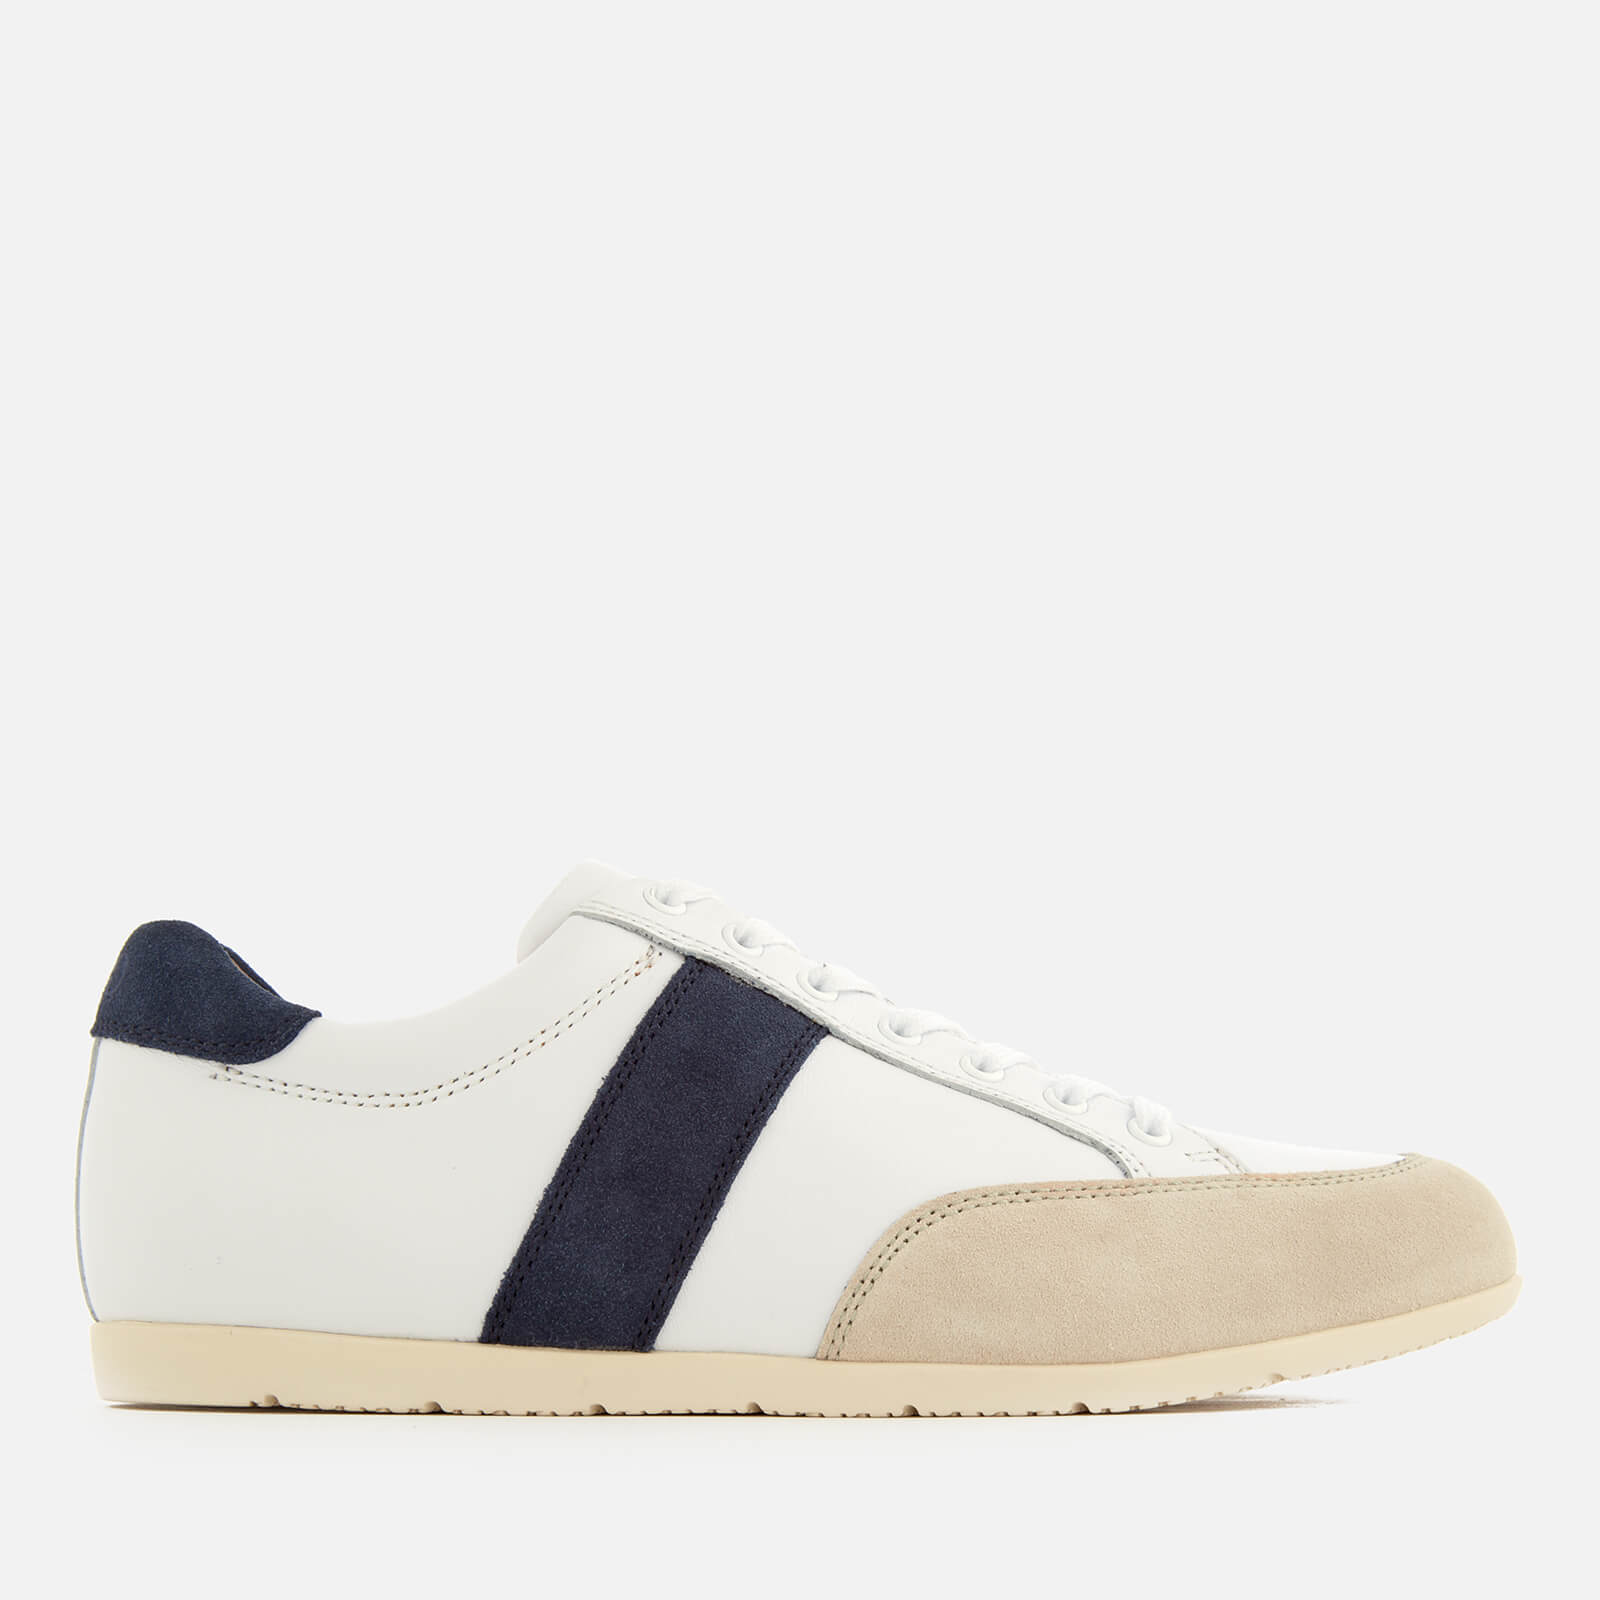 4ec10b1ac0b Polo Ralph Lauren Men s Price Nappa Suede Low Profile Trainers -  White Indigo Ivory - Free UK Delivery over £50